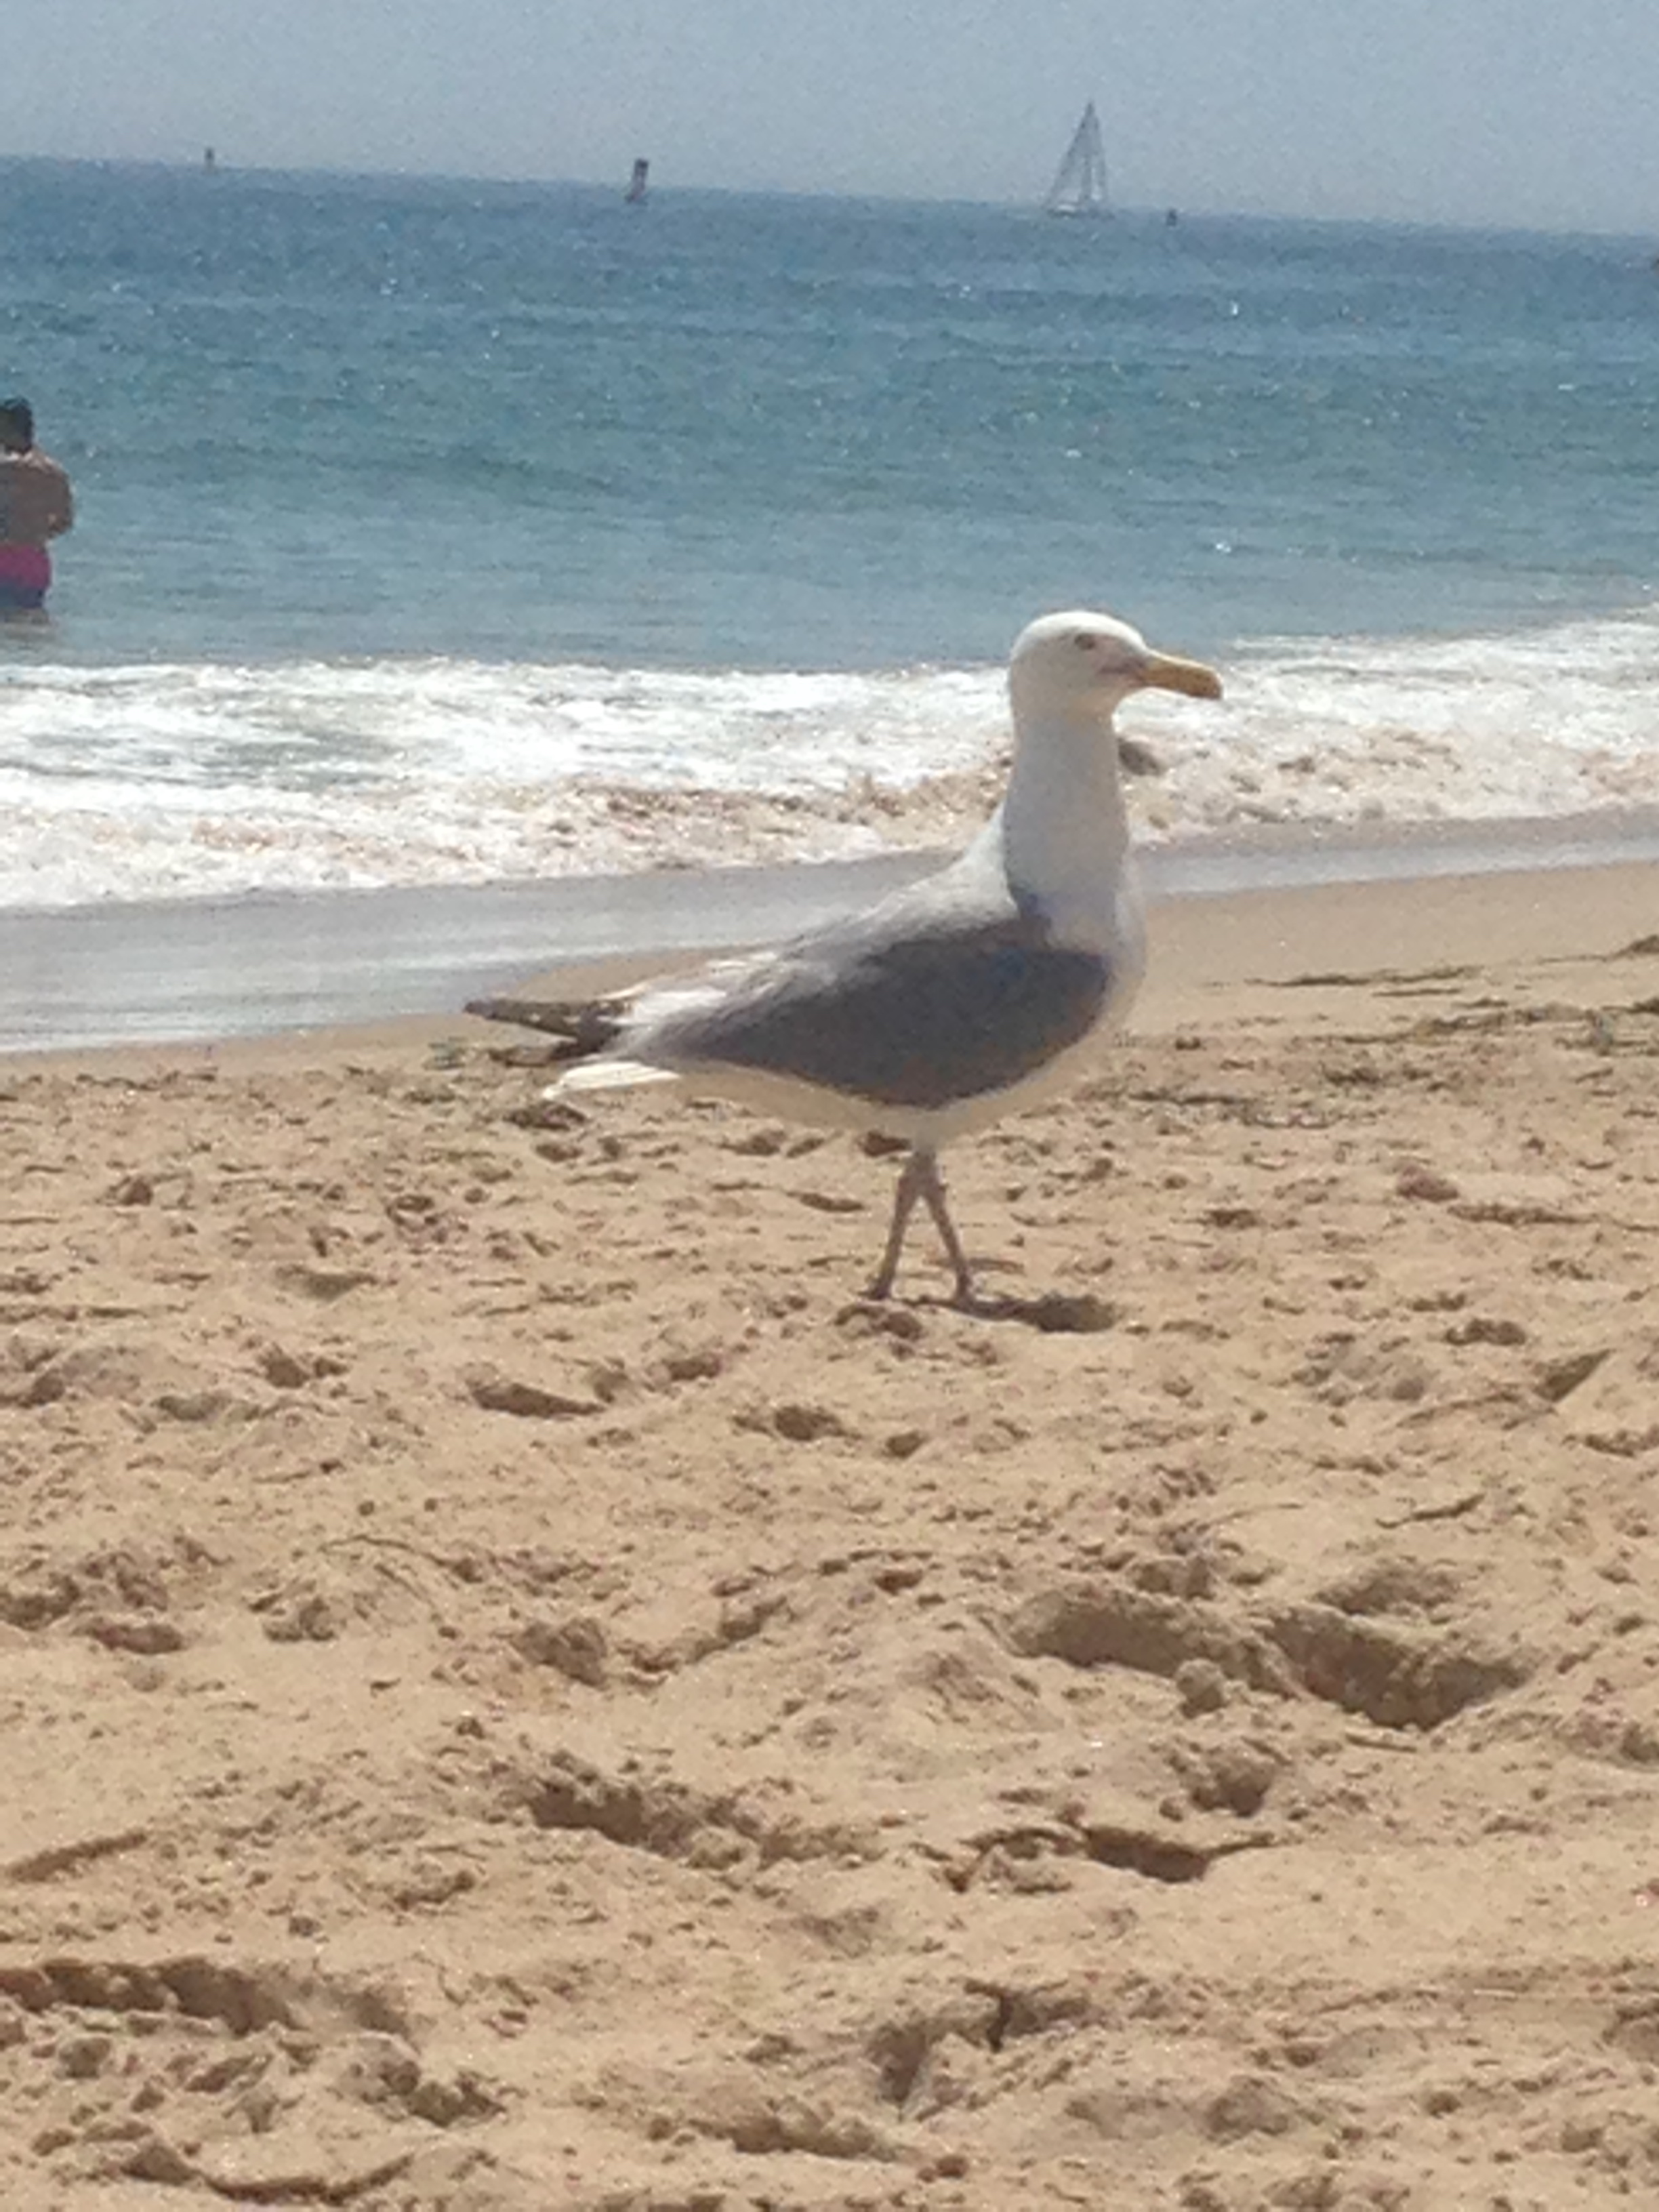 This guy ate my sandwich! But notice the beautiful water in the background!